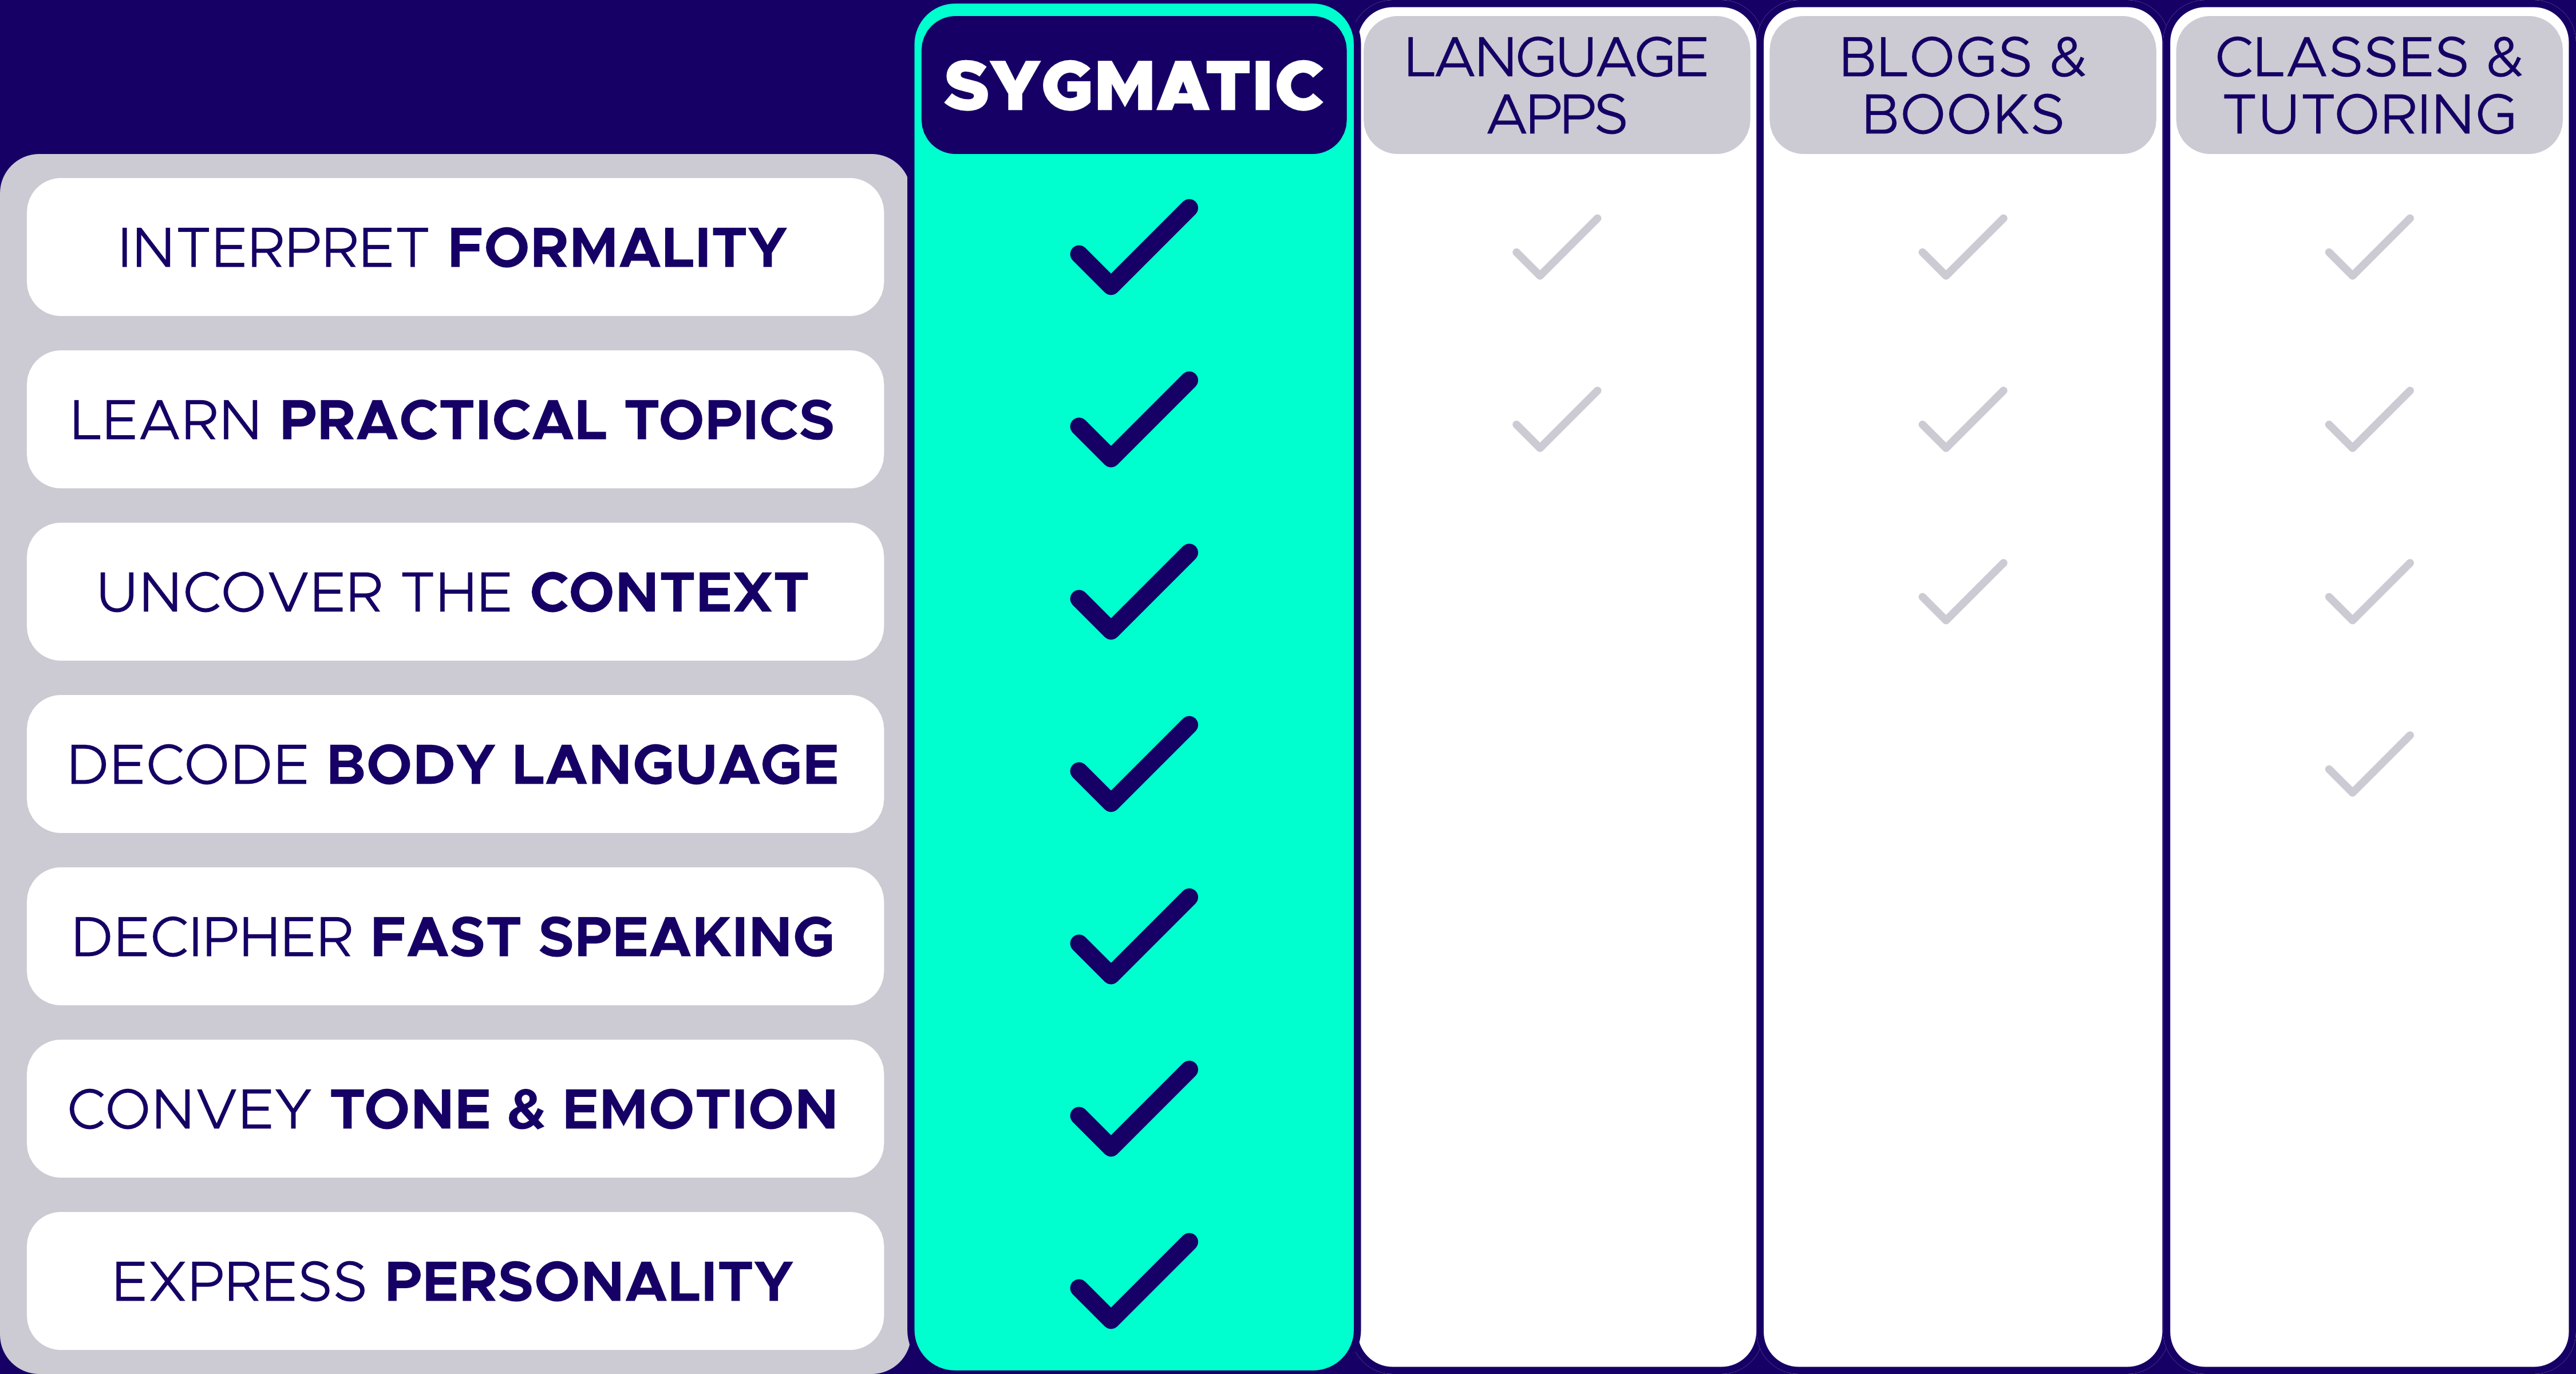 Sygmatic language learning features compared to apps, textbooks, classes, and tutoring. Formality, practical topics, context, body language, natural speaking, tone, emotion, personality